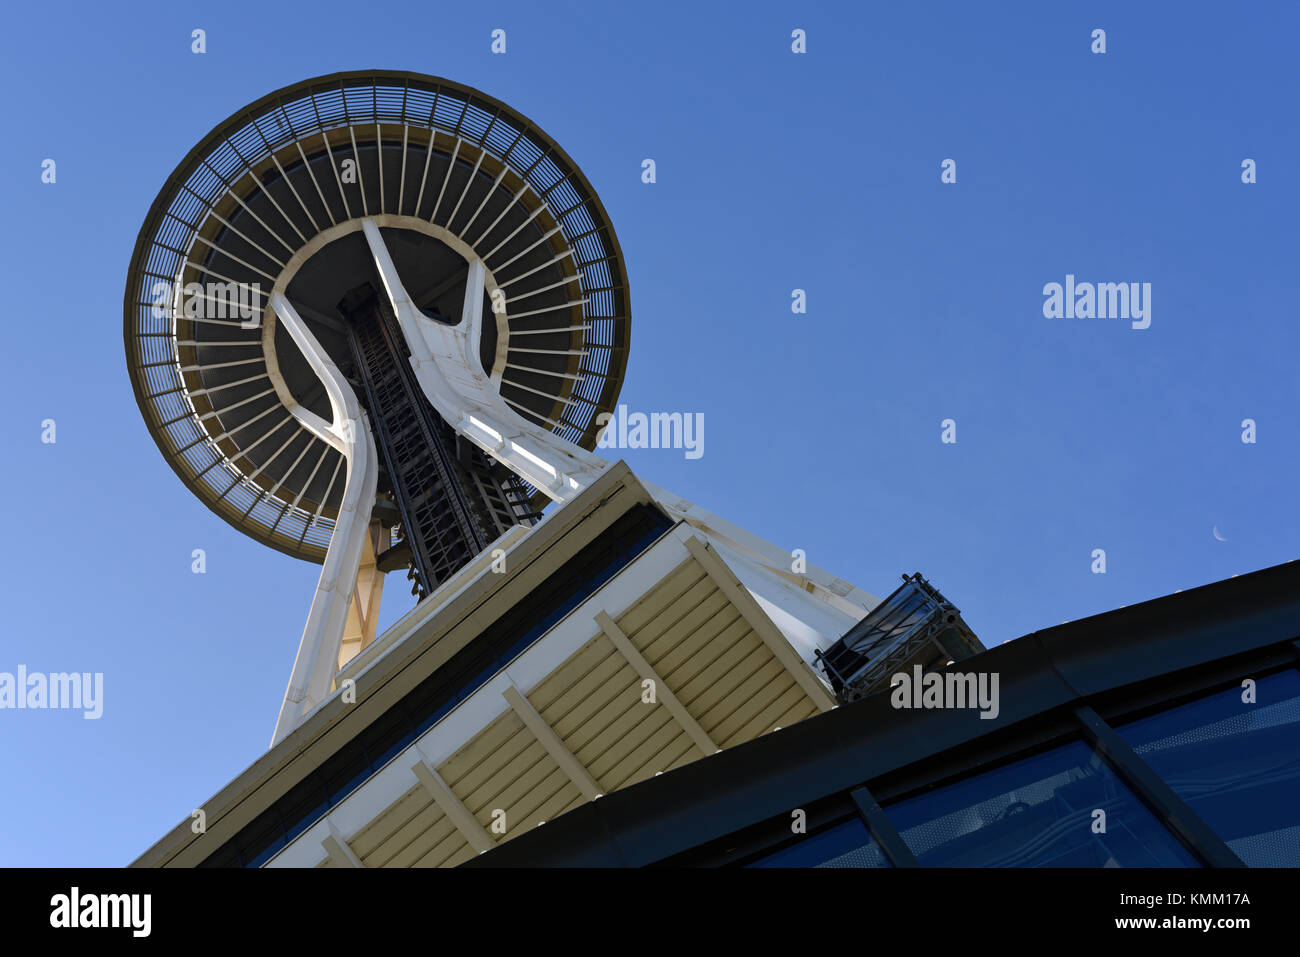 Il Seattle Space Needle torre di osservazione, nello Stato di Washington, USA Foto Stock